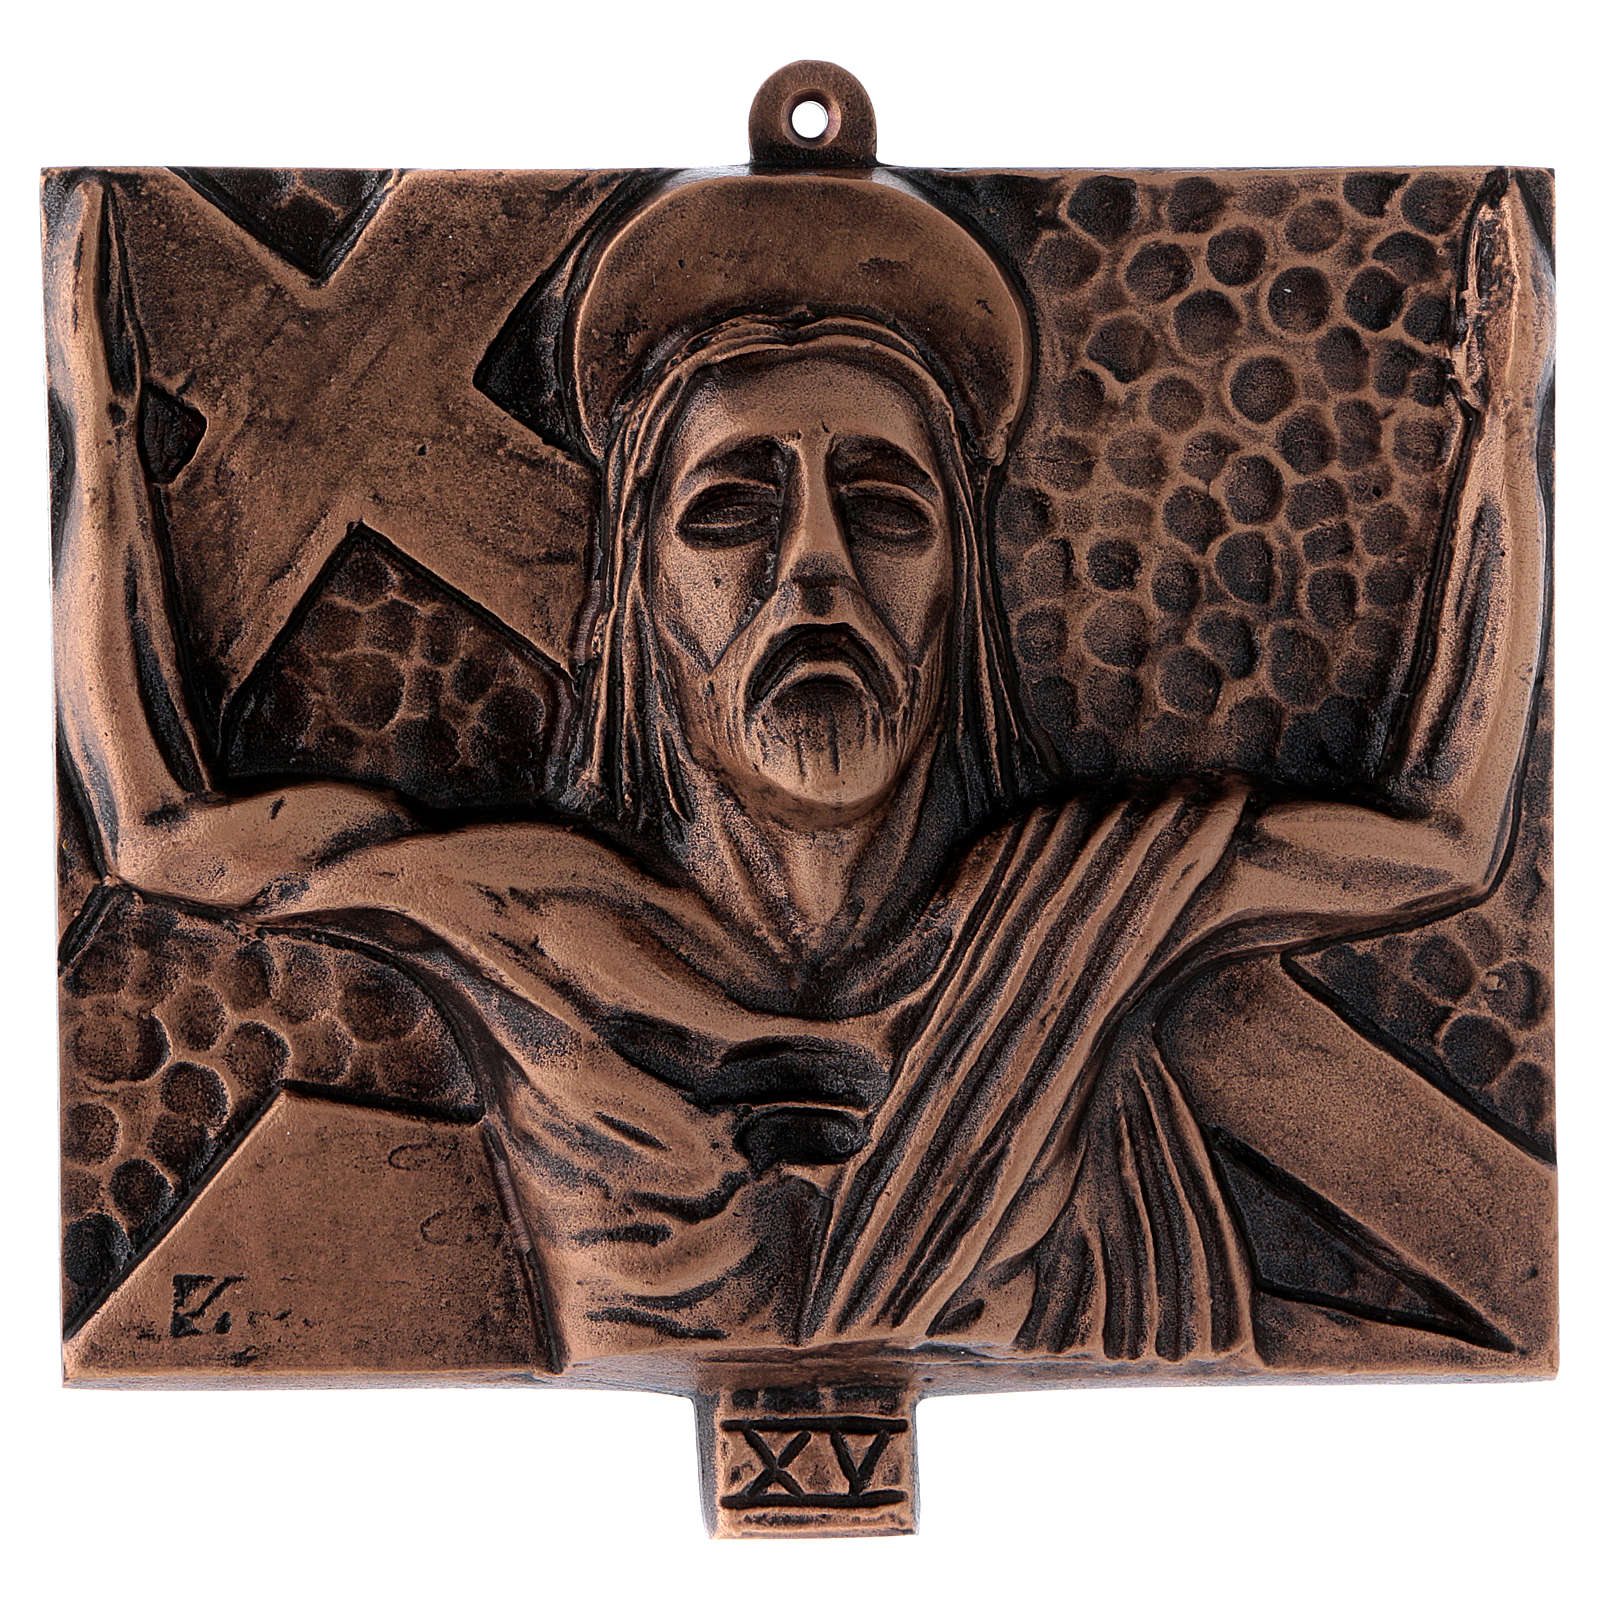 Way of the Cross in hammered bronze, 15 stations 4